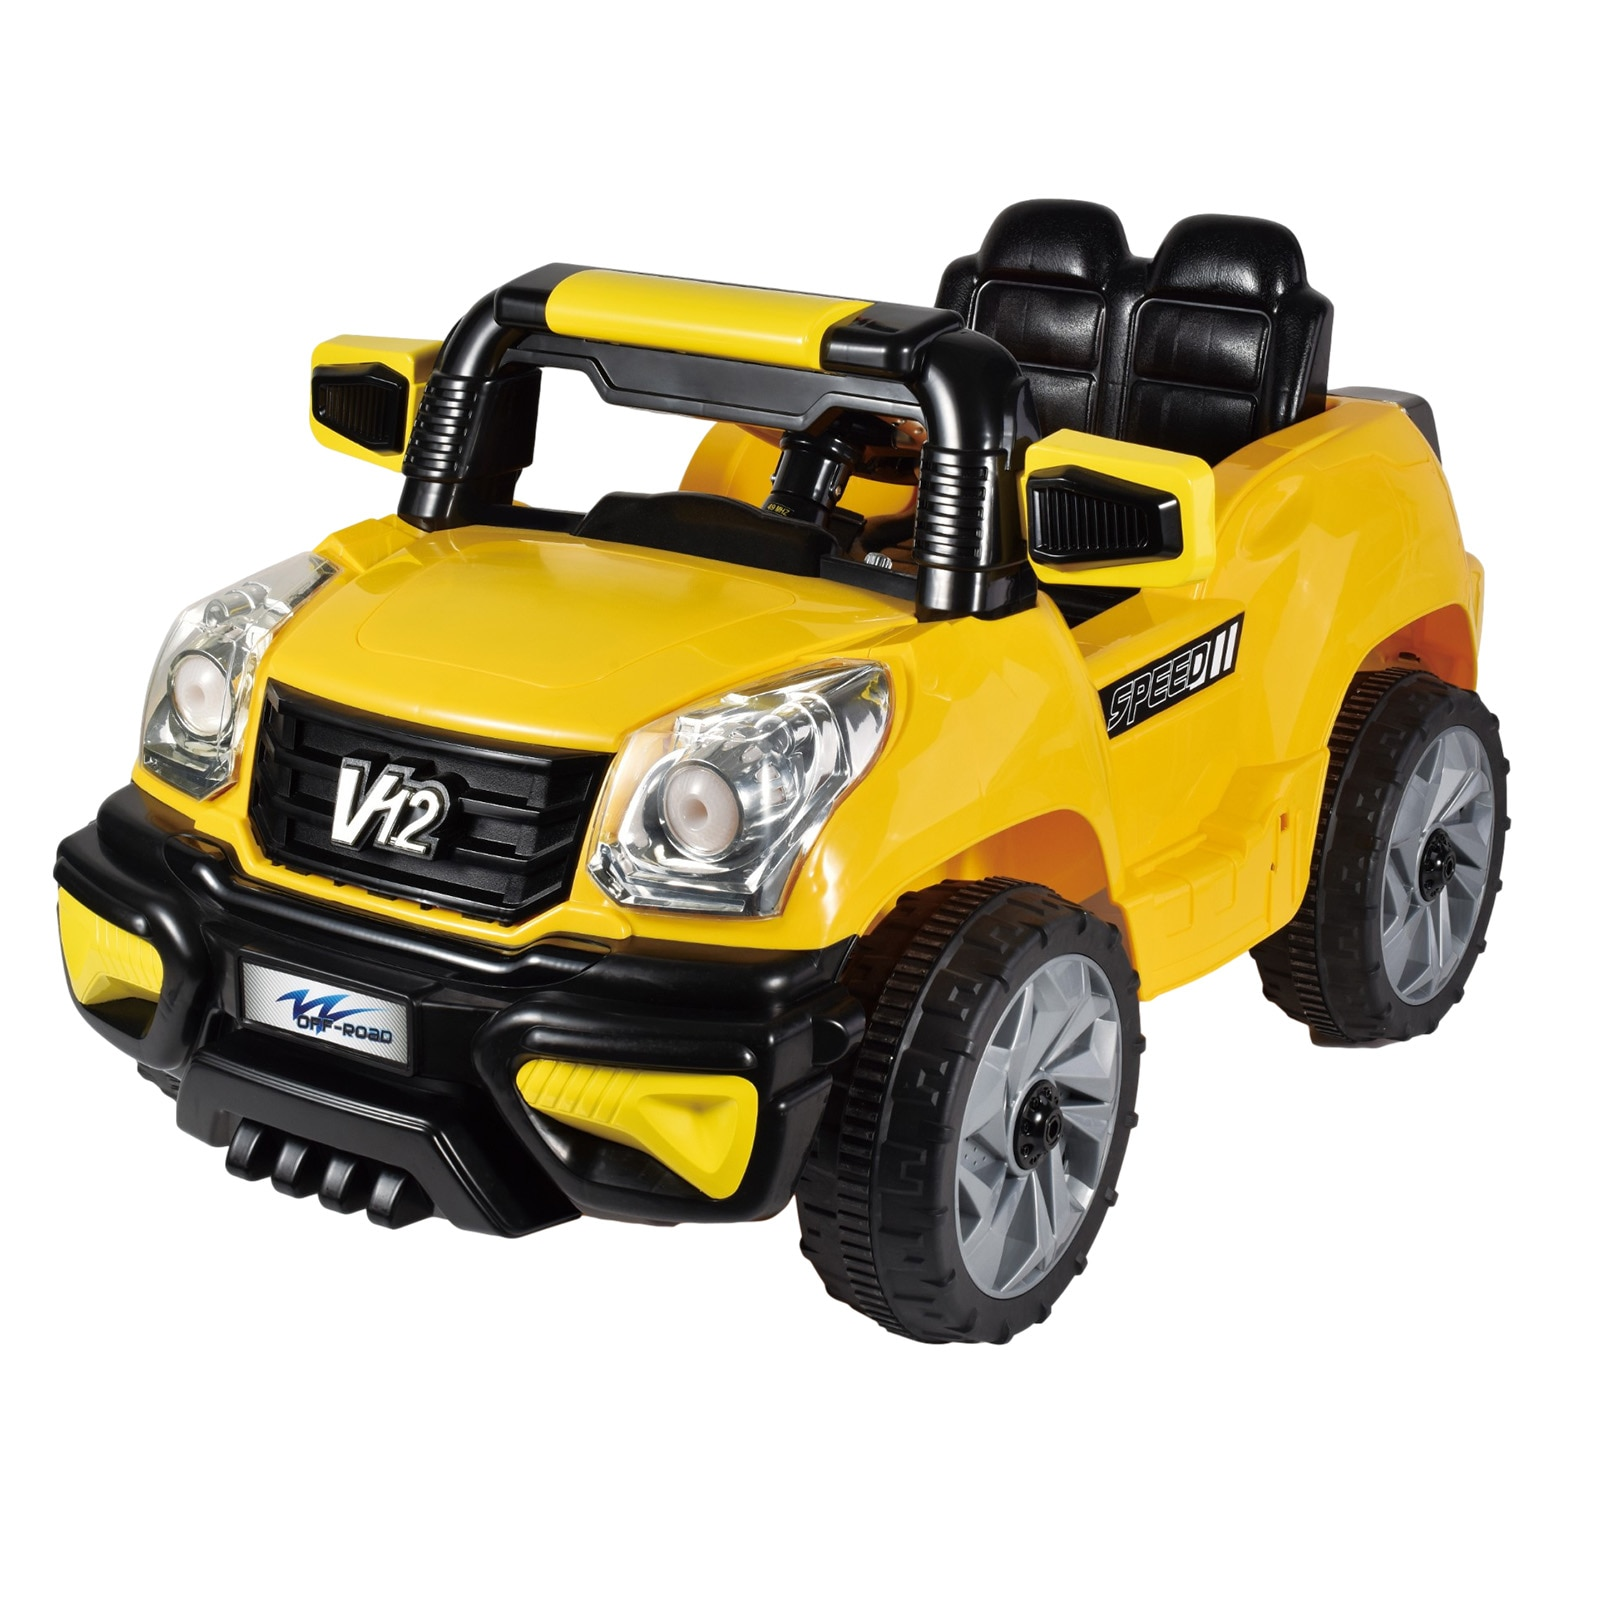 RC Car Toy With Light Music Battery Powered Spring Auto Toy Car Electric Stroller Single Drive 20Wx1 Battery 6V4.5AHx1